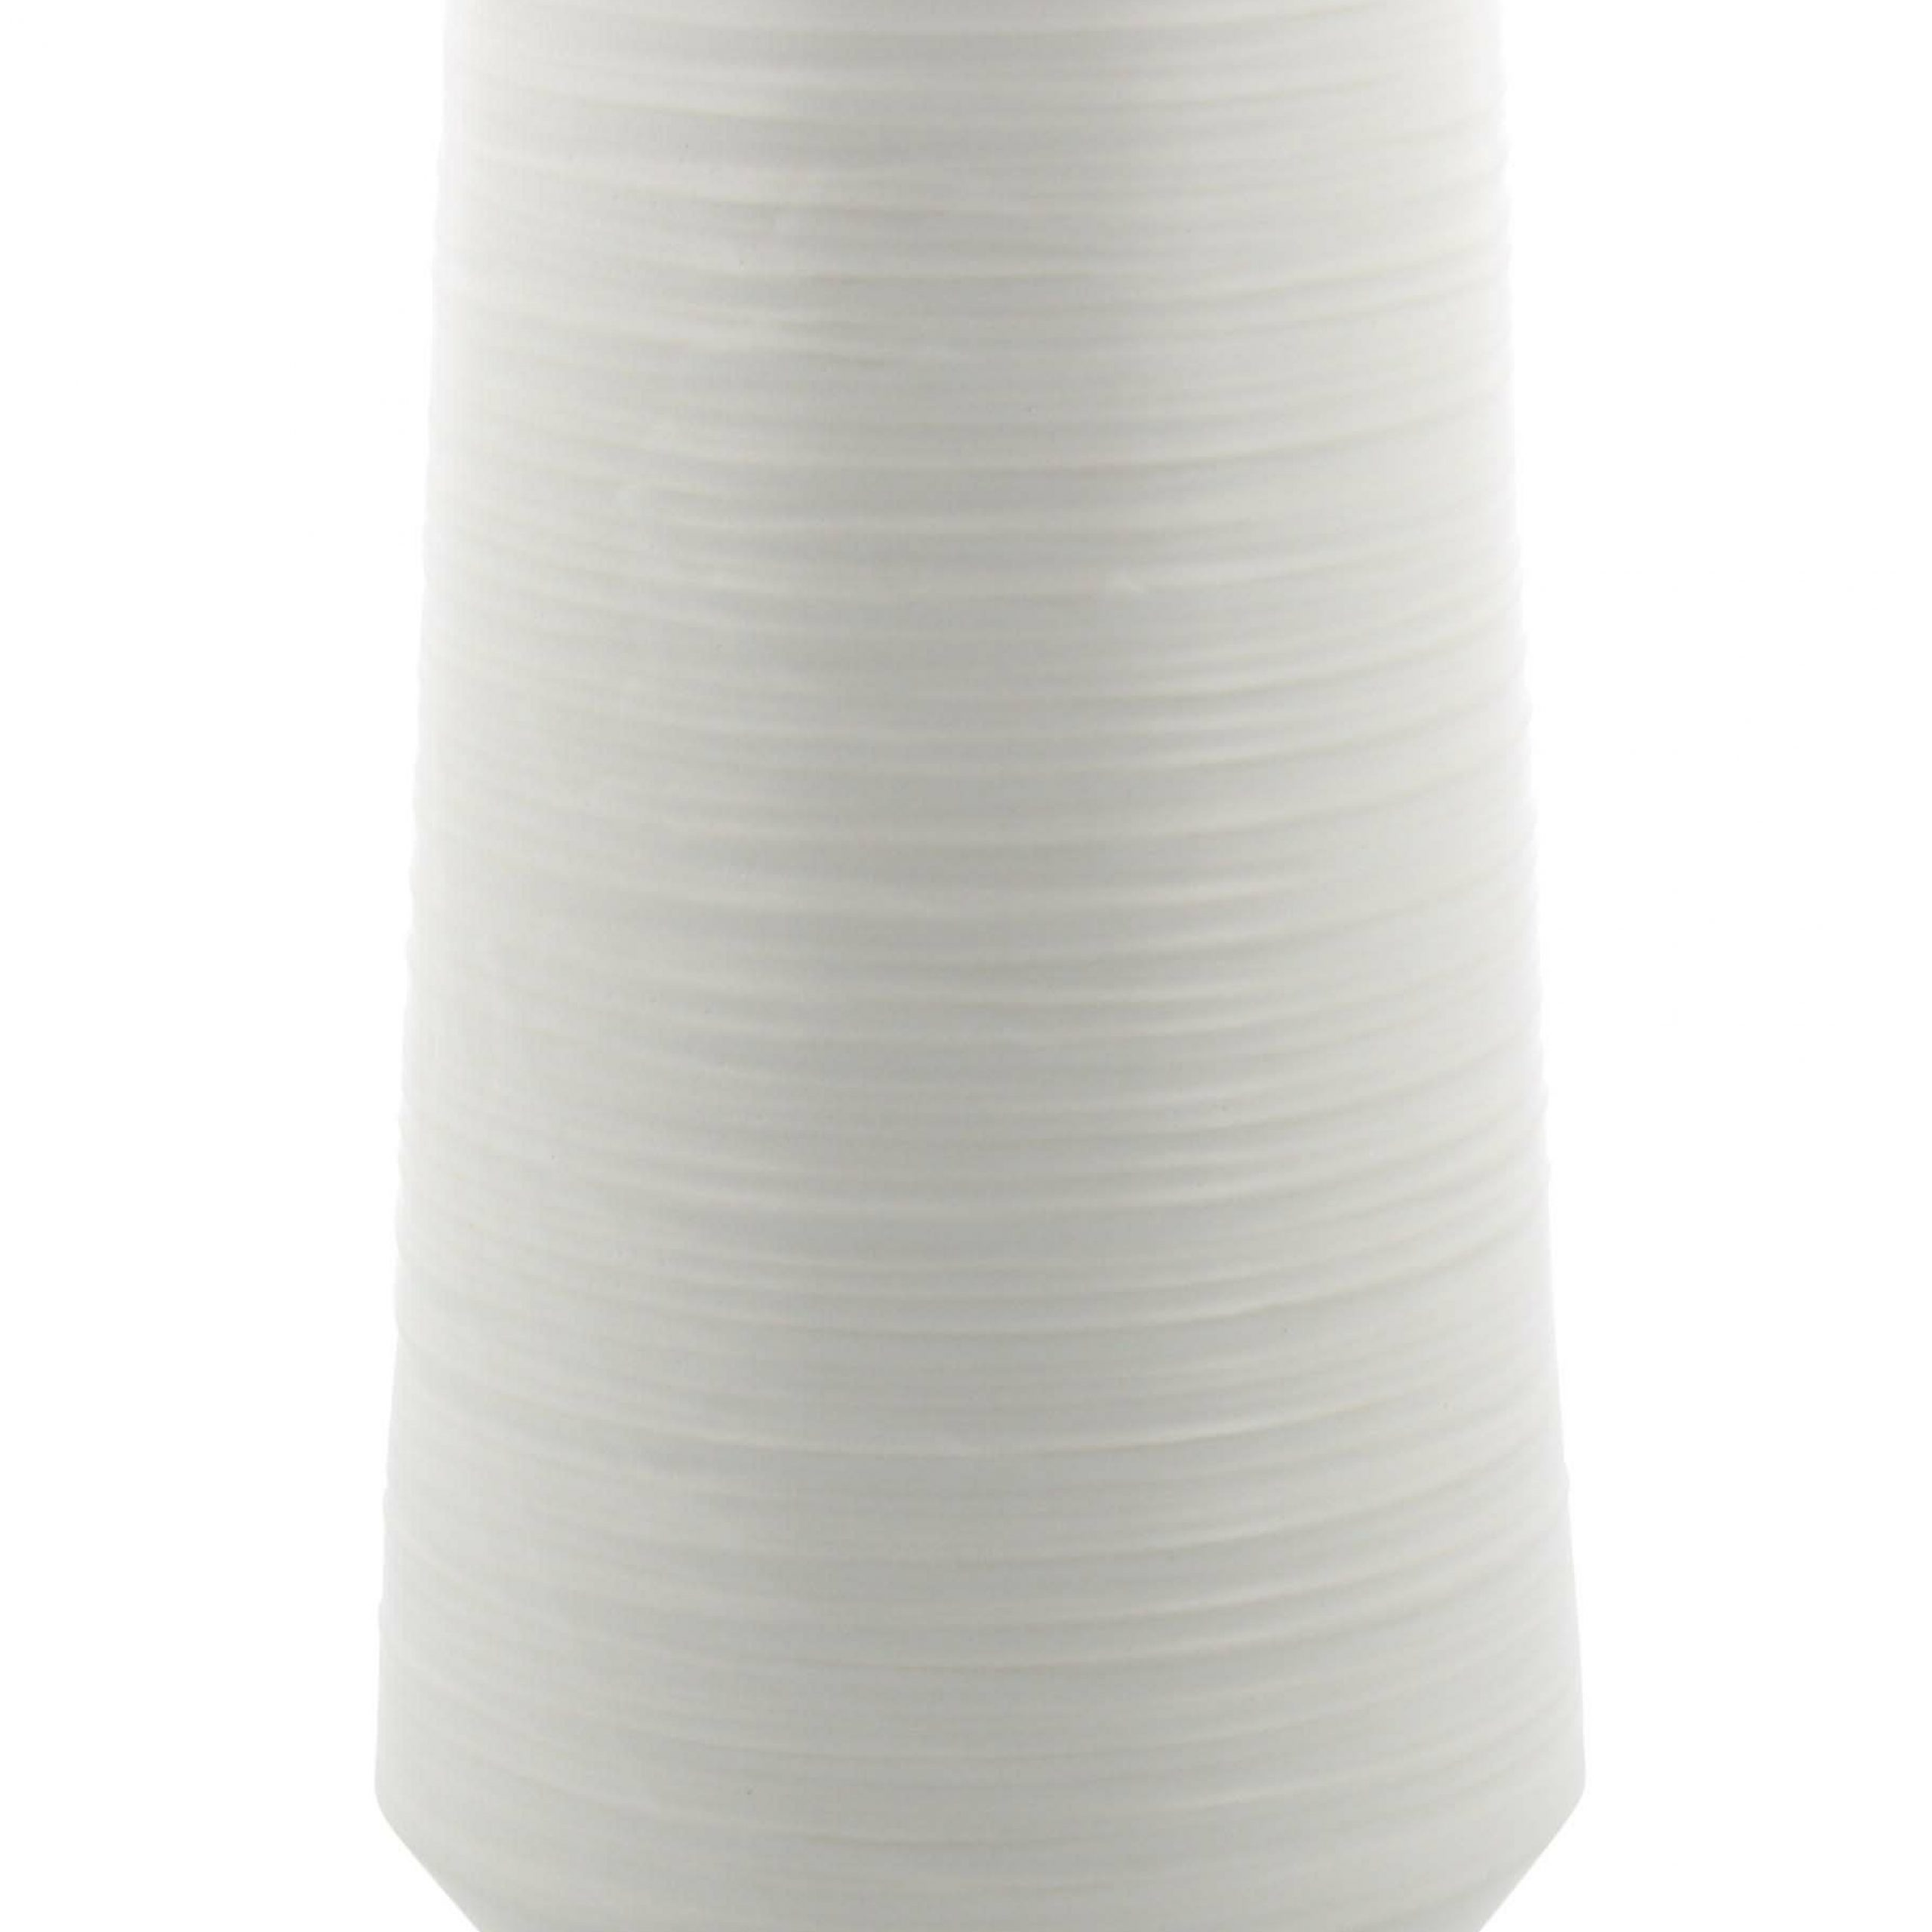 Trendy Kingsland Matte Porcelain Pear Shaped Table Vase Intended For Aloysius Ceramic Garden Stools (View 23 of 30)